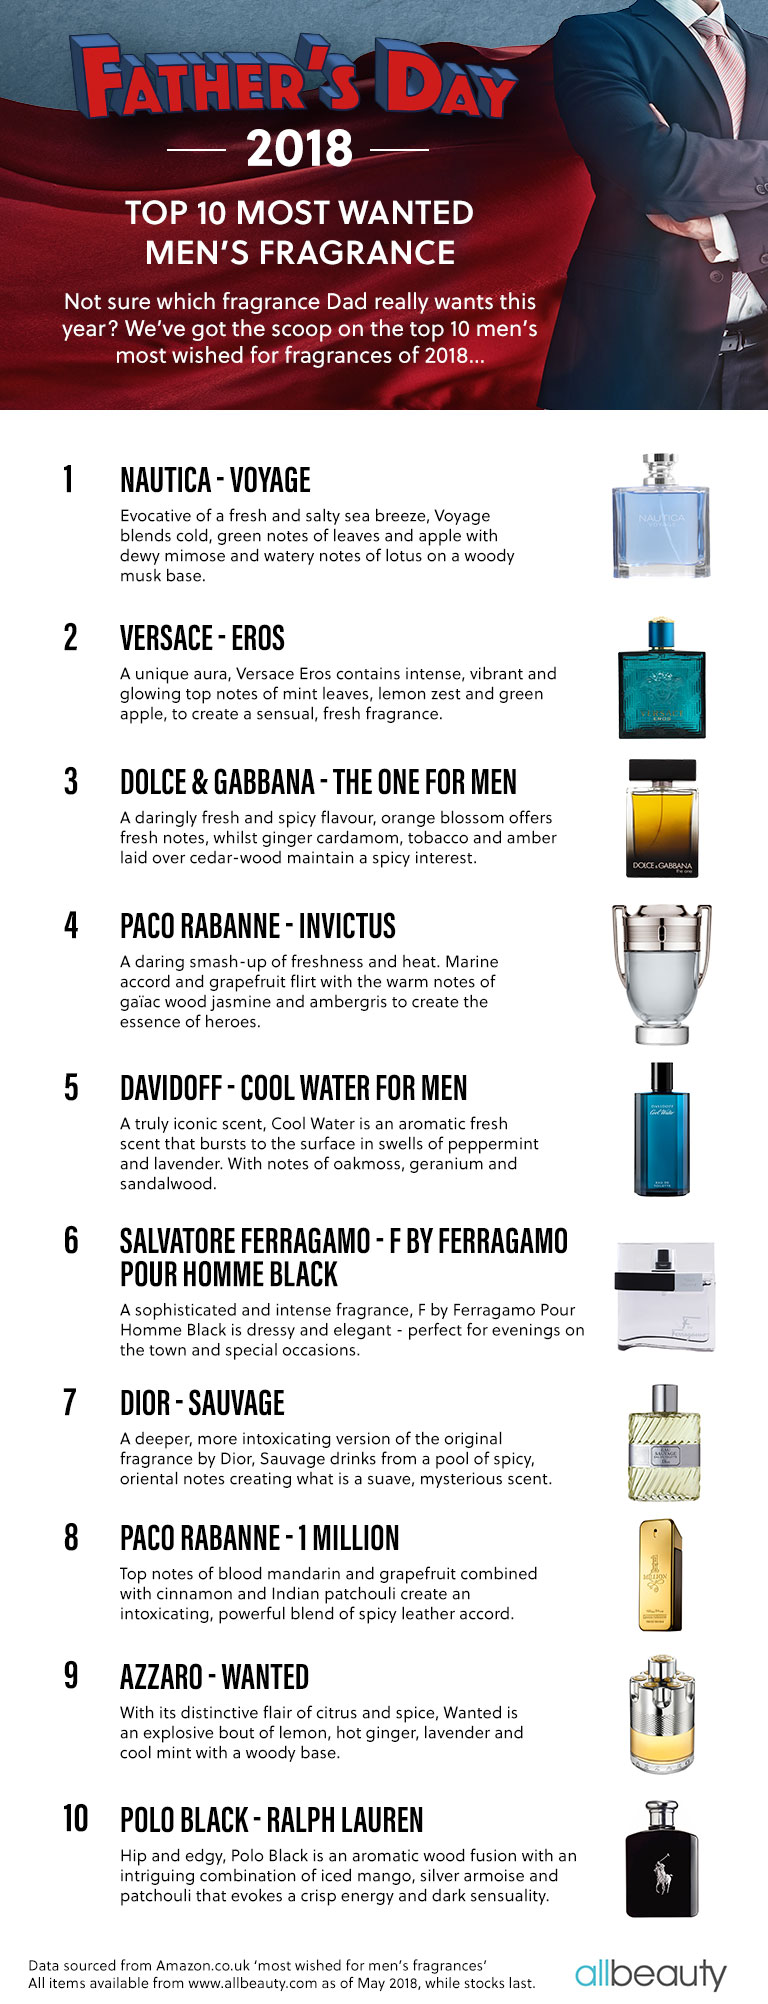 Top 10 Father's Day Fragrance 2018